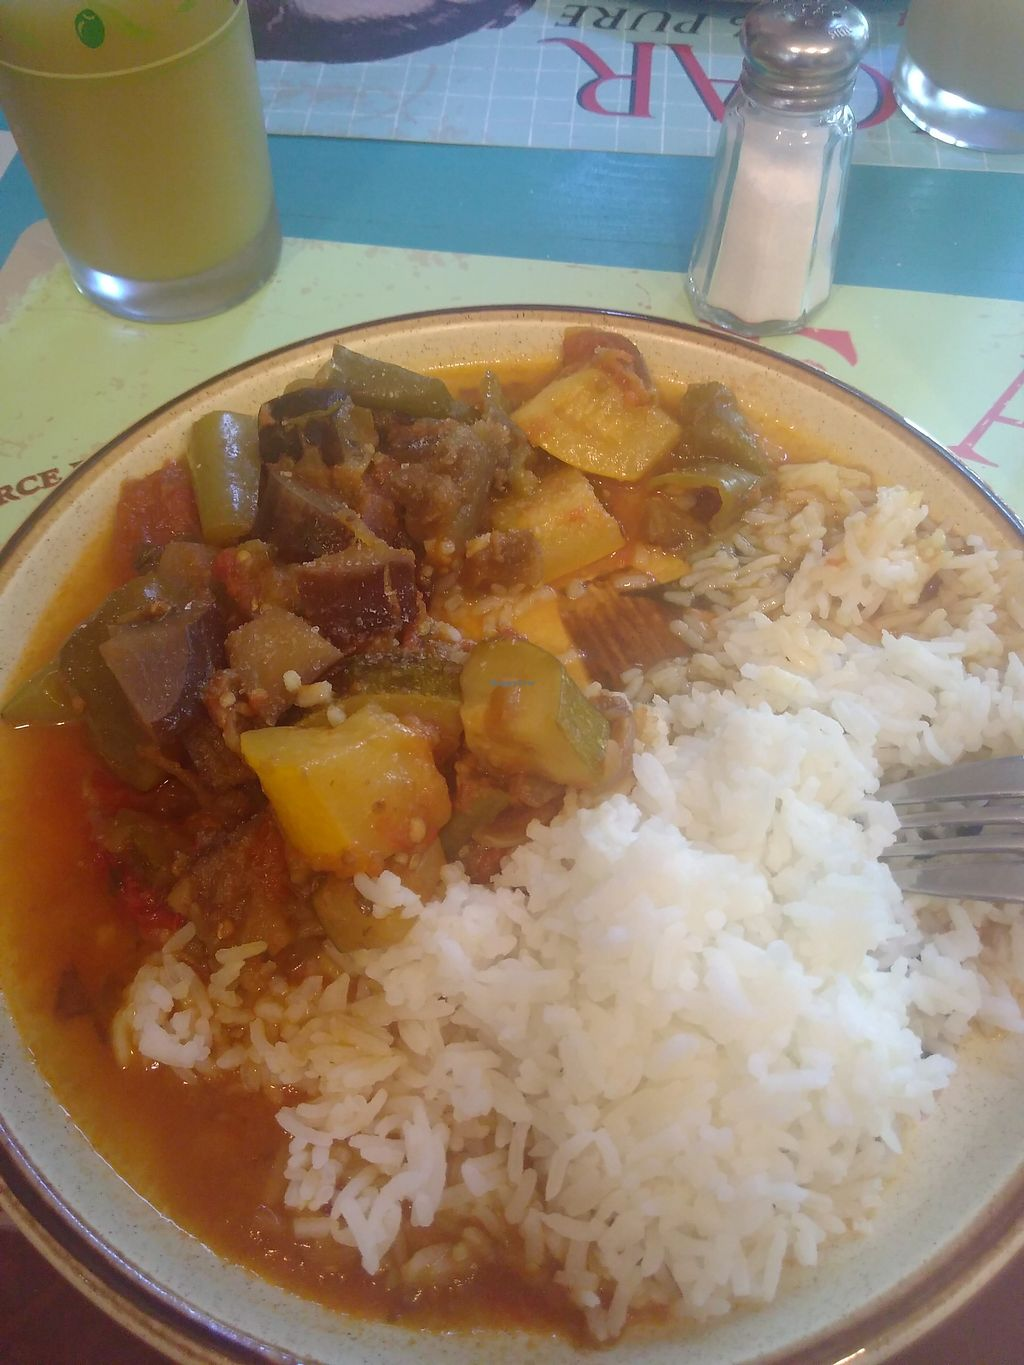 """Photo of Le Bistrot des Legume  by <a href=""""/members/profile/naiaracunha"""">naiaracunha</a> <br/>Ratatouille!  <br/> September 9, 2017  - <a href='/contact/abuse/image/100608/302449'>Report</a>"""